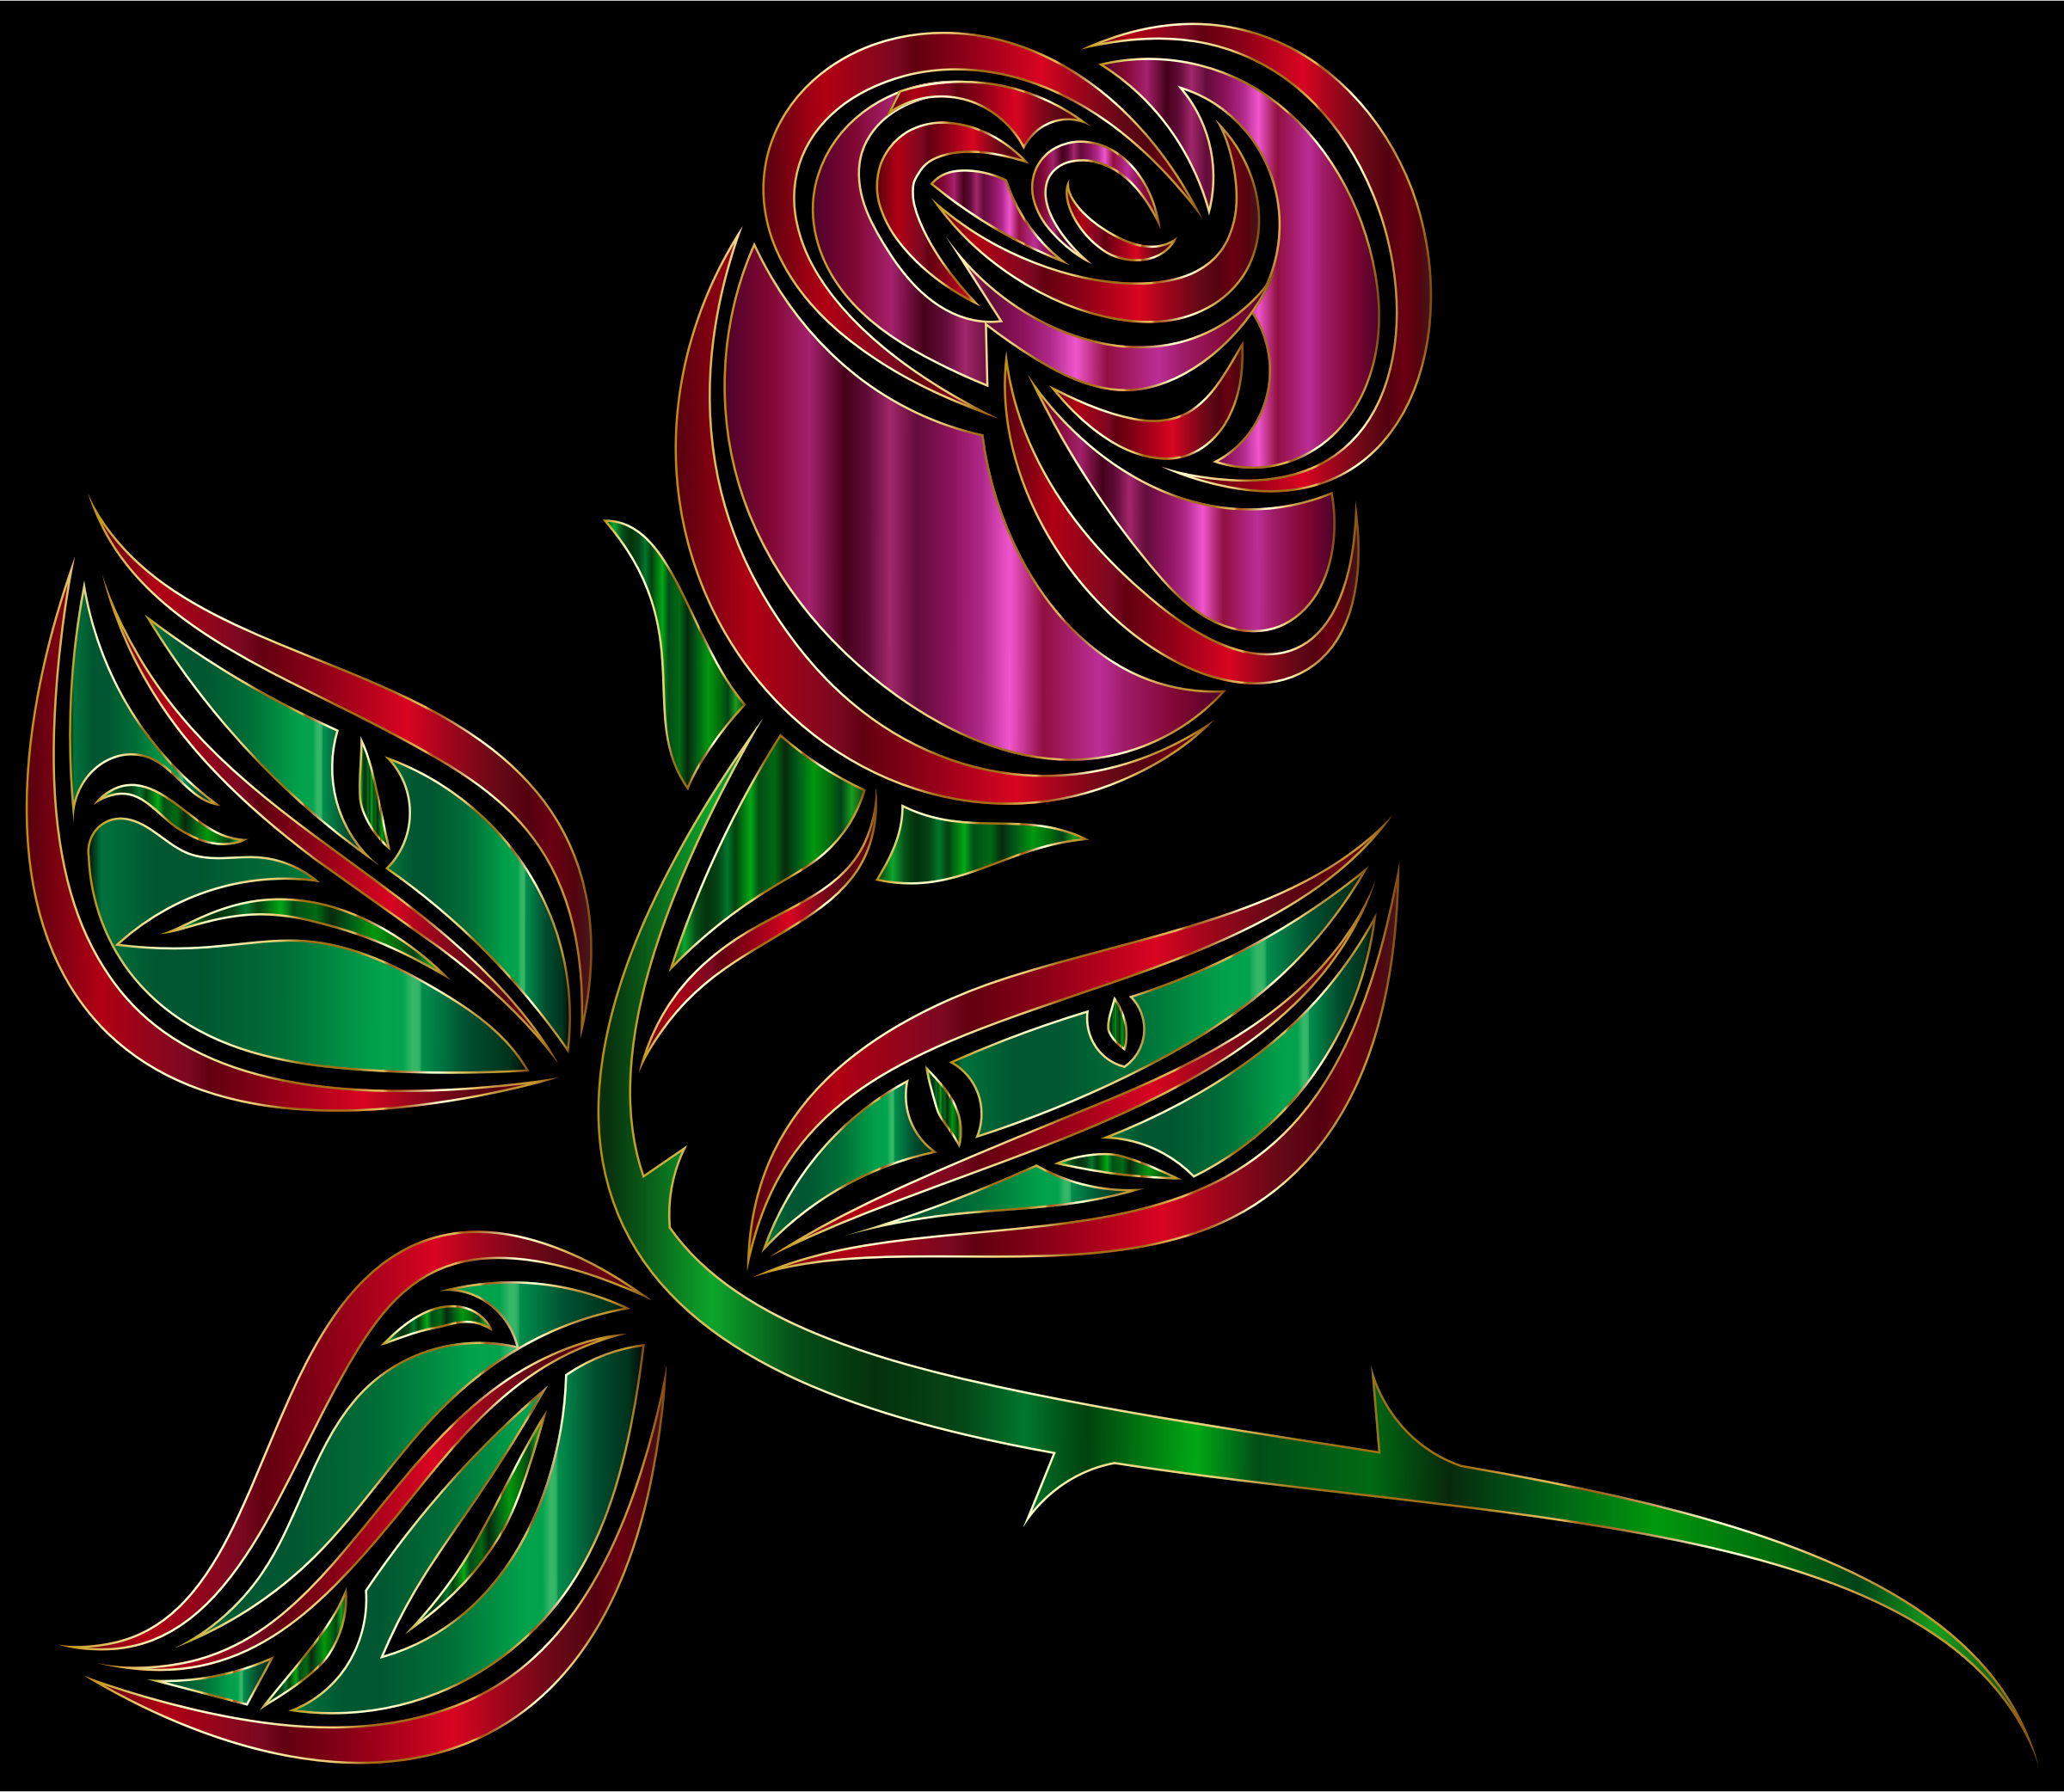 Stylized Rose Extended by GDJ